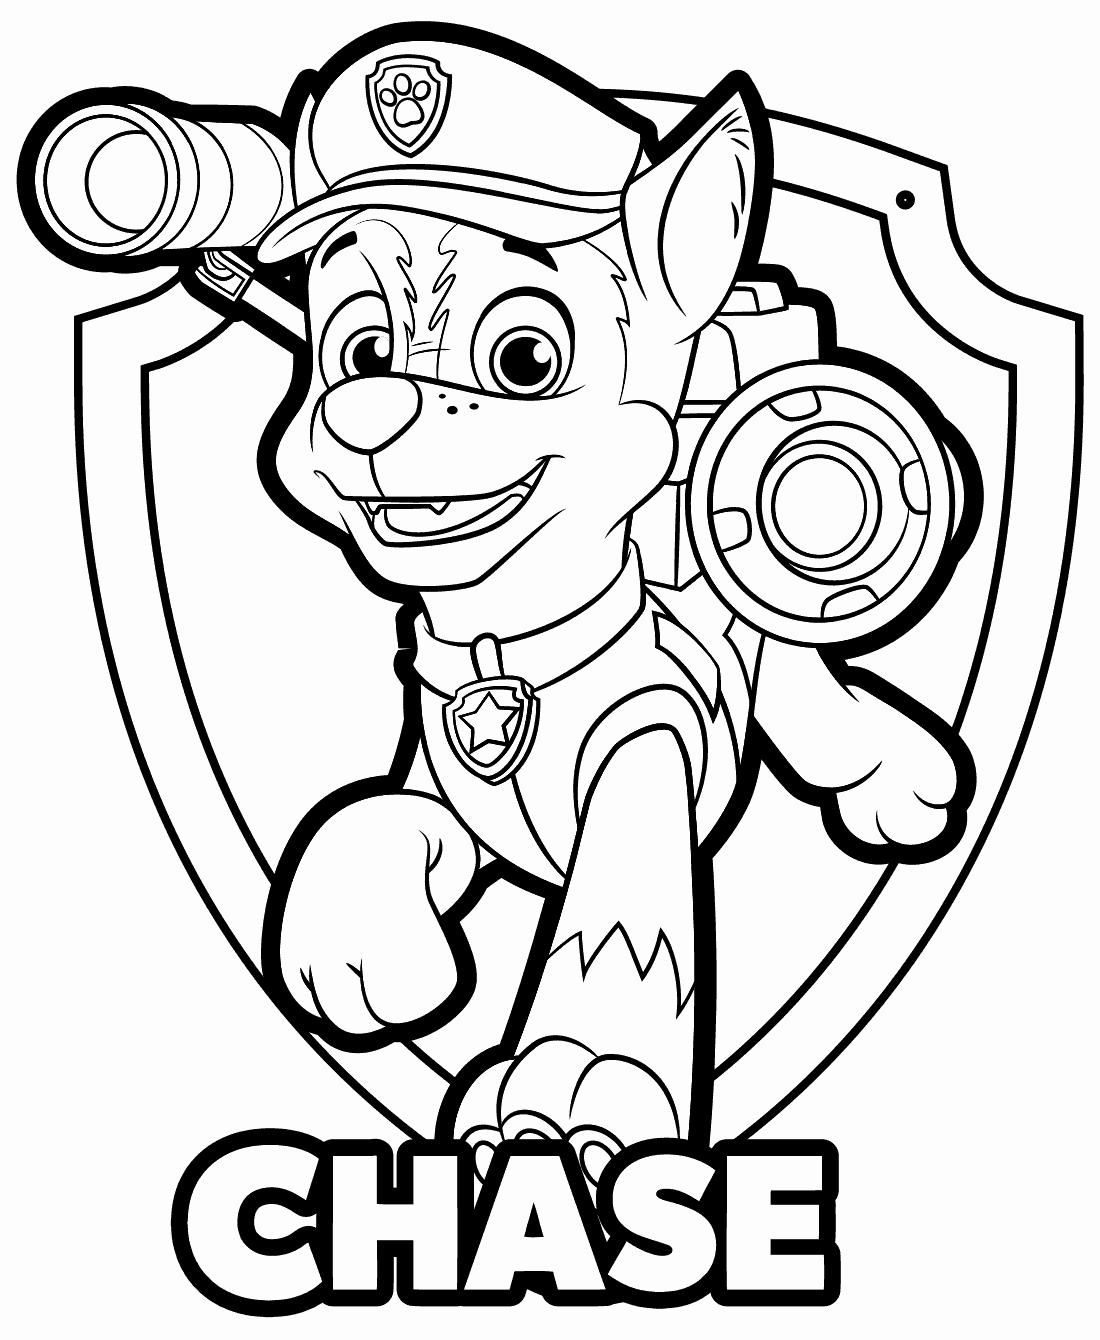 1100x1340 Paw Patrol Coloring Pages Lovely Paw Patrol Chase Drawing